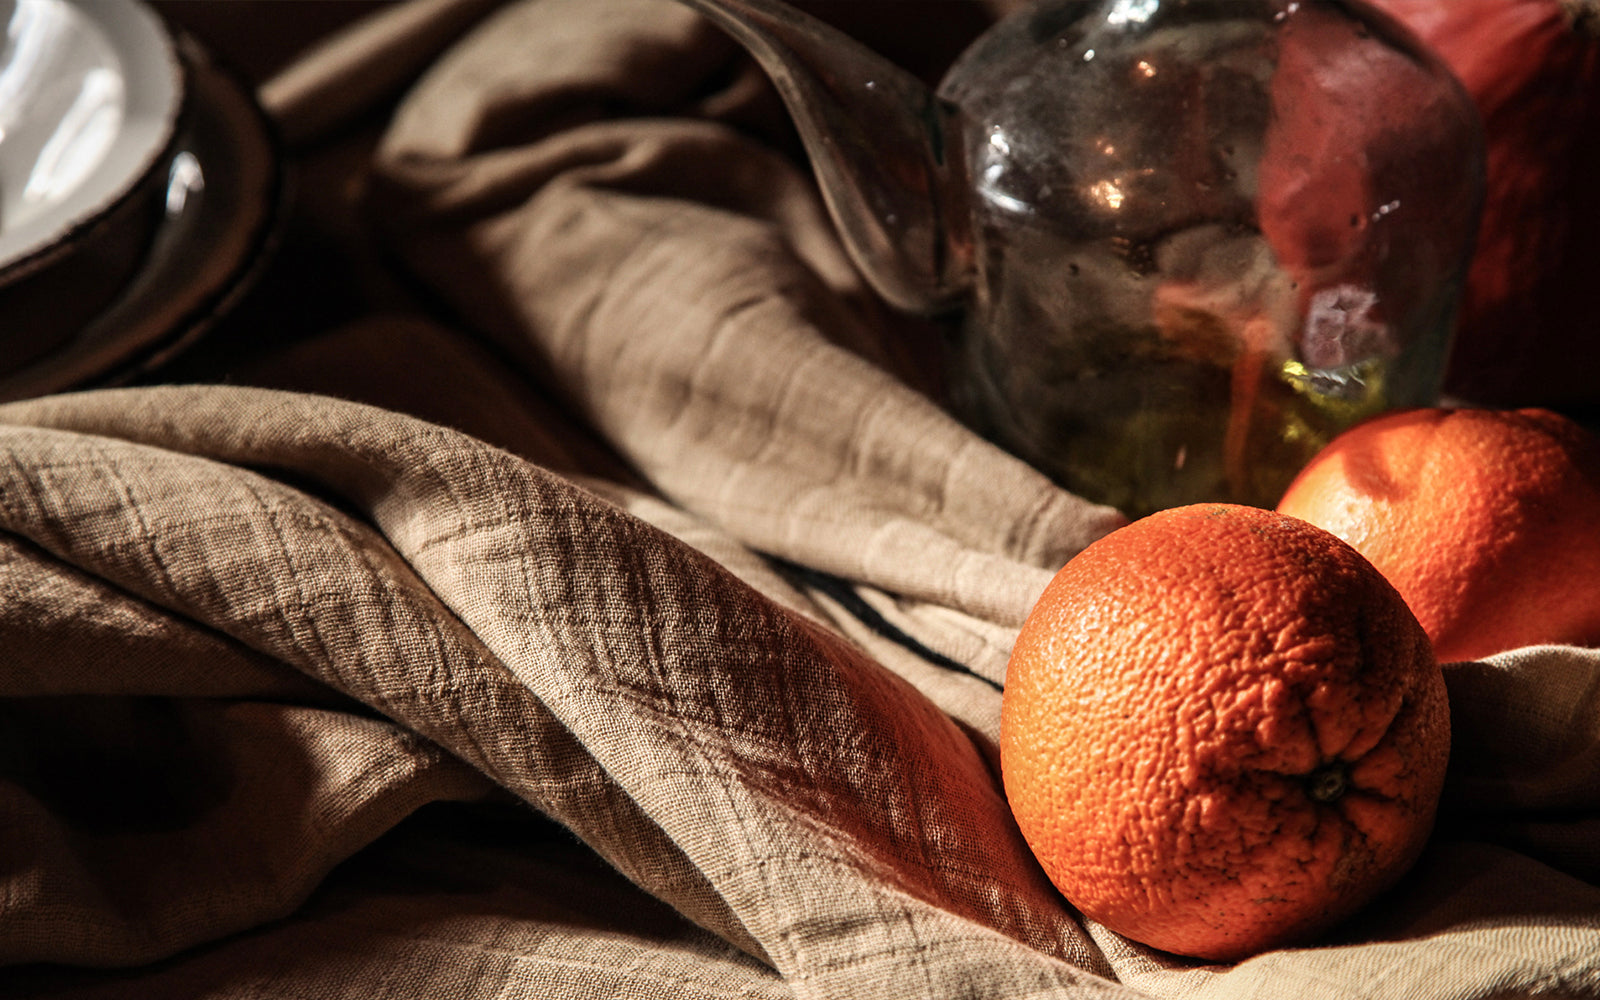 Light brown textured gauze cotton tablecloth with some oranges and a glass teapot on it.